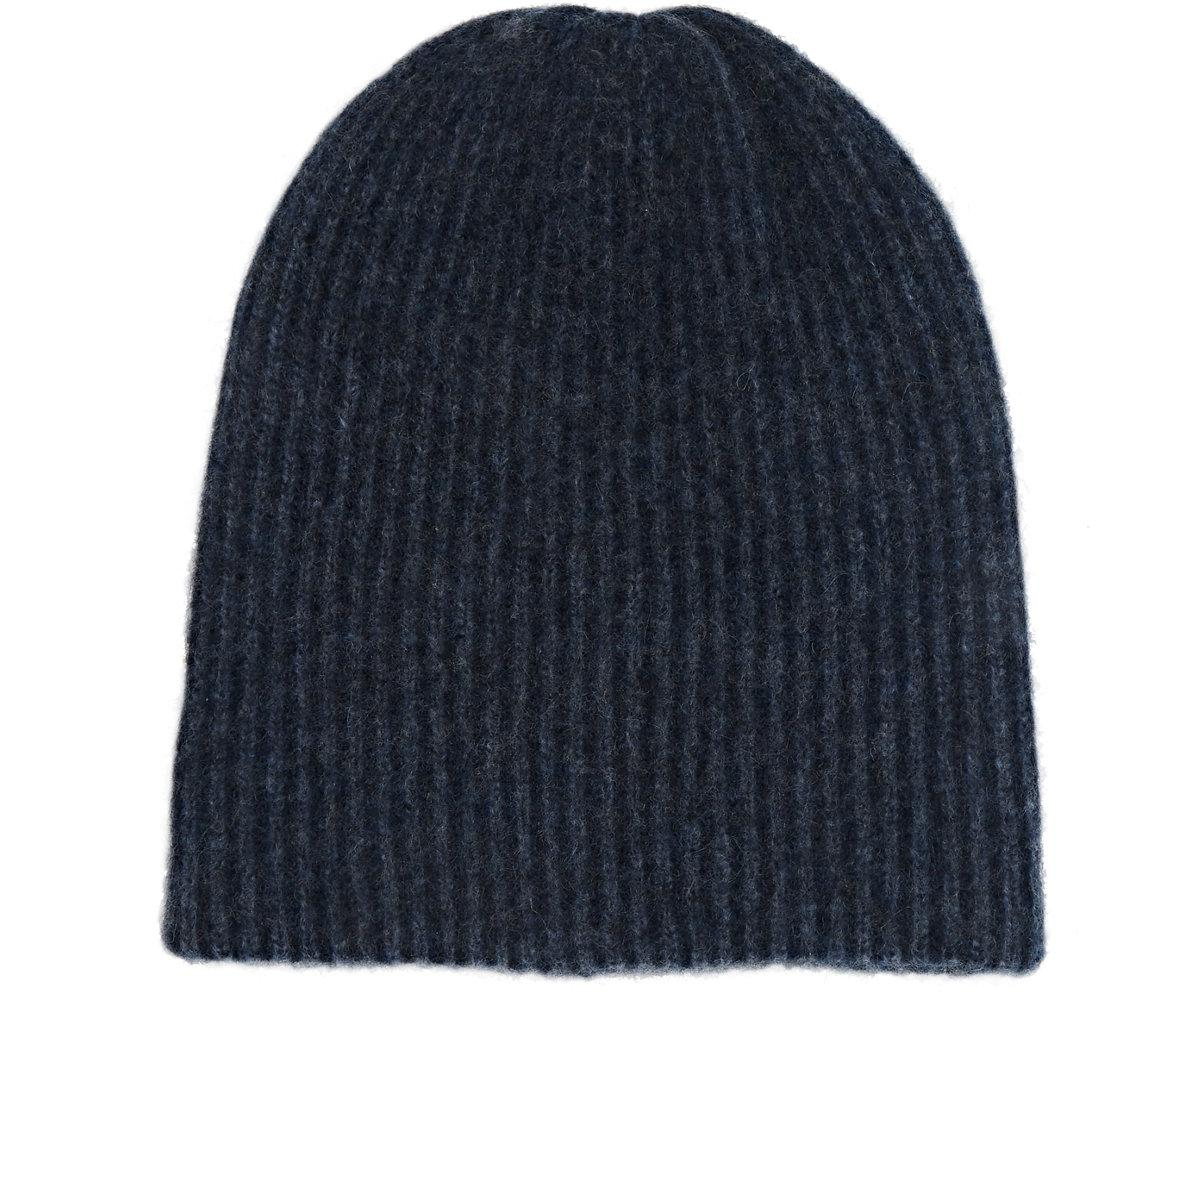 Mens Summer Cashmere Watchmans Cap The Elder Statesman